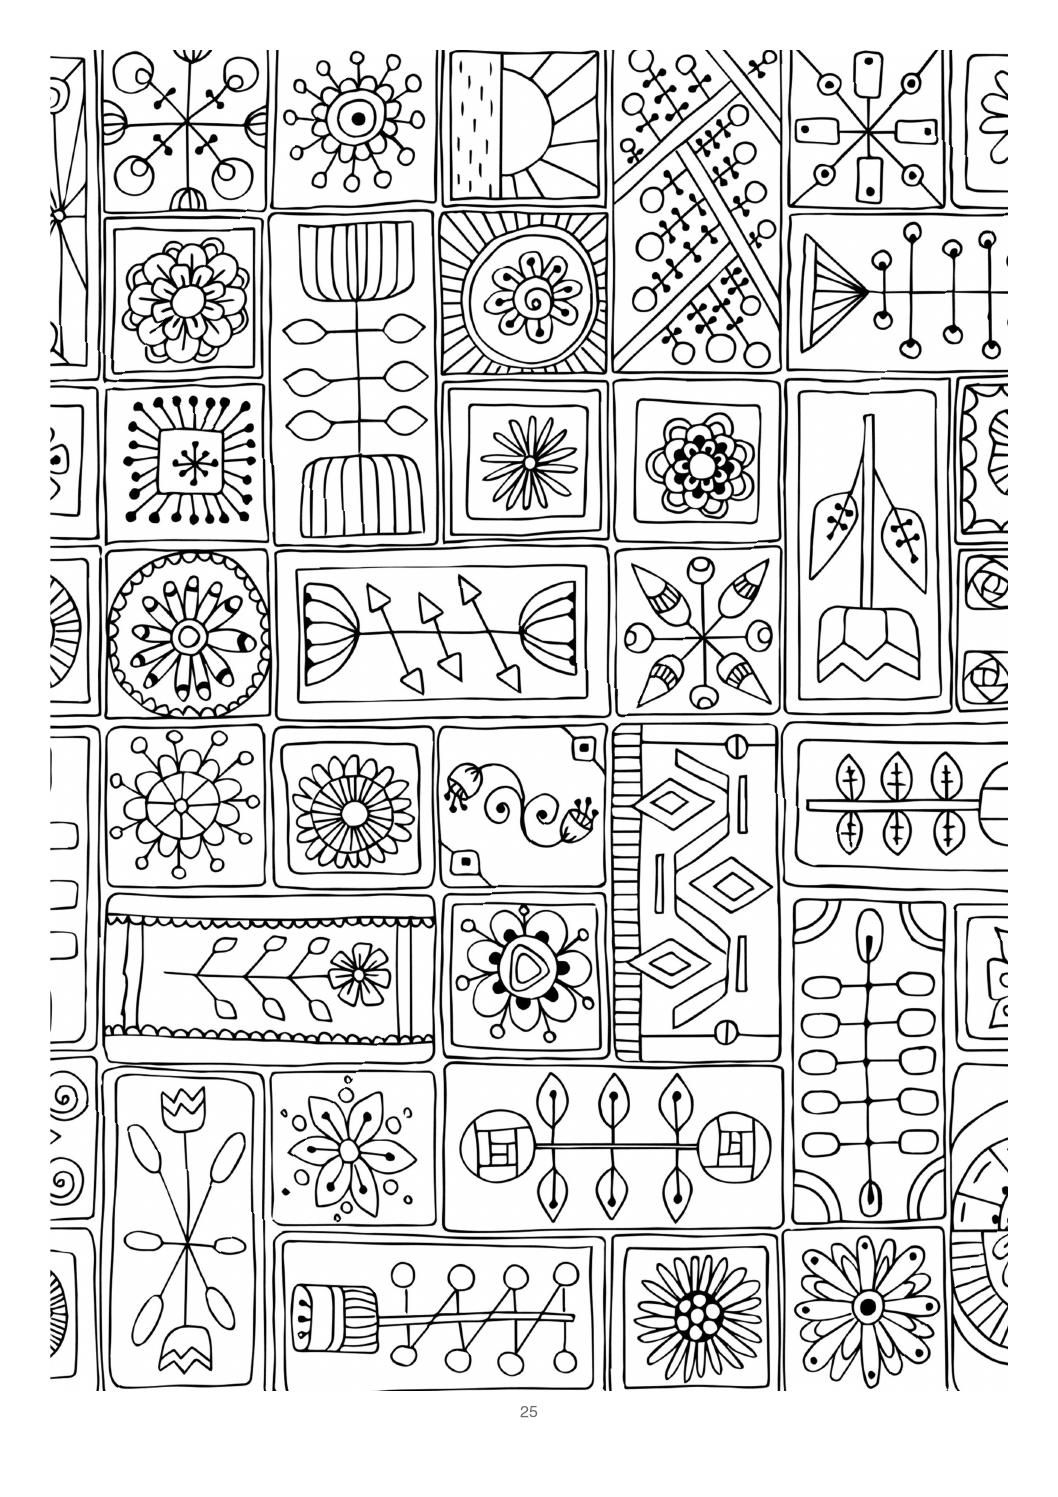 Mind massage colouring book for adults pattern and images